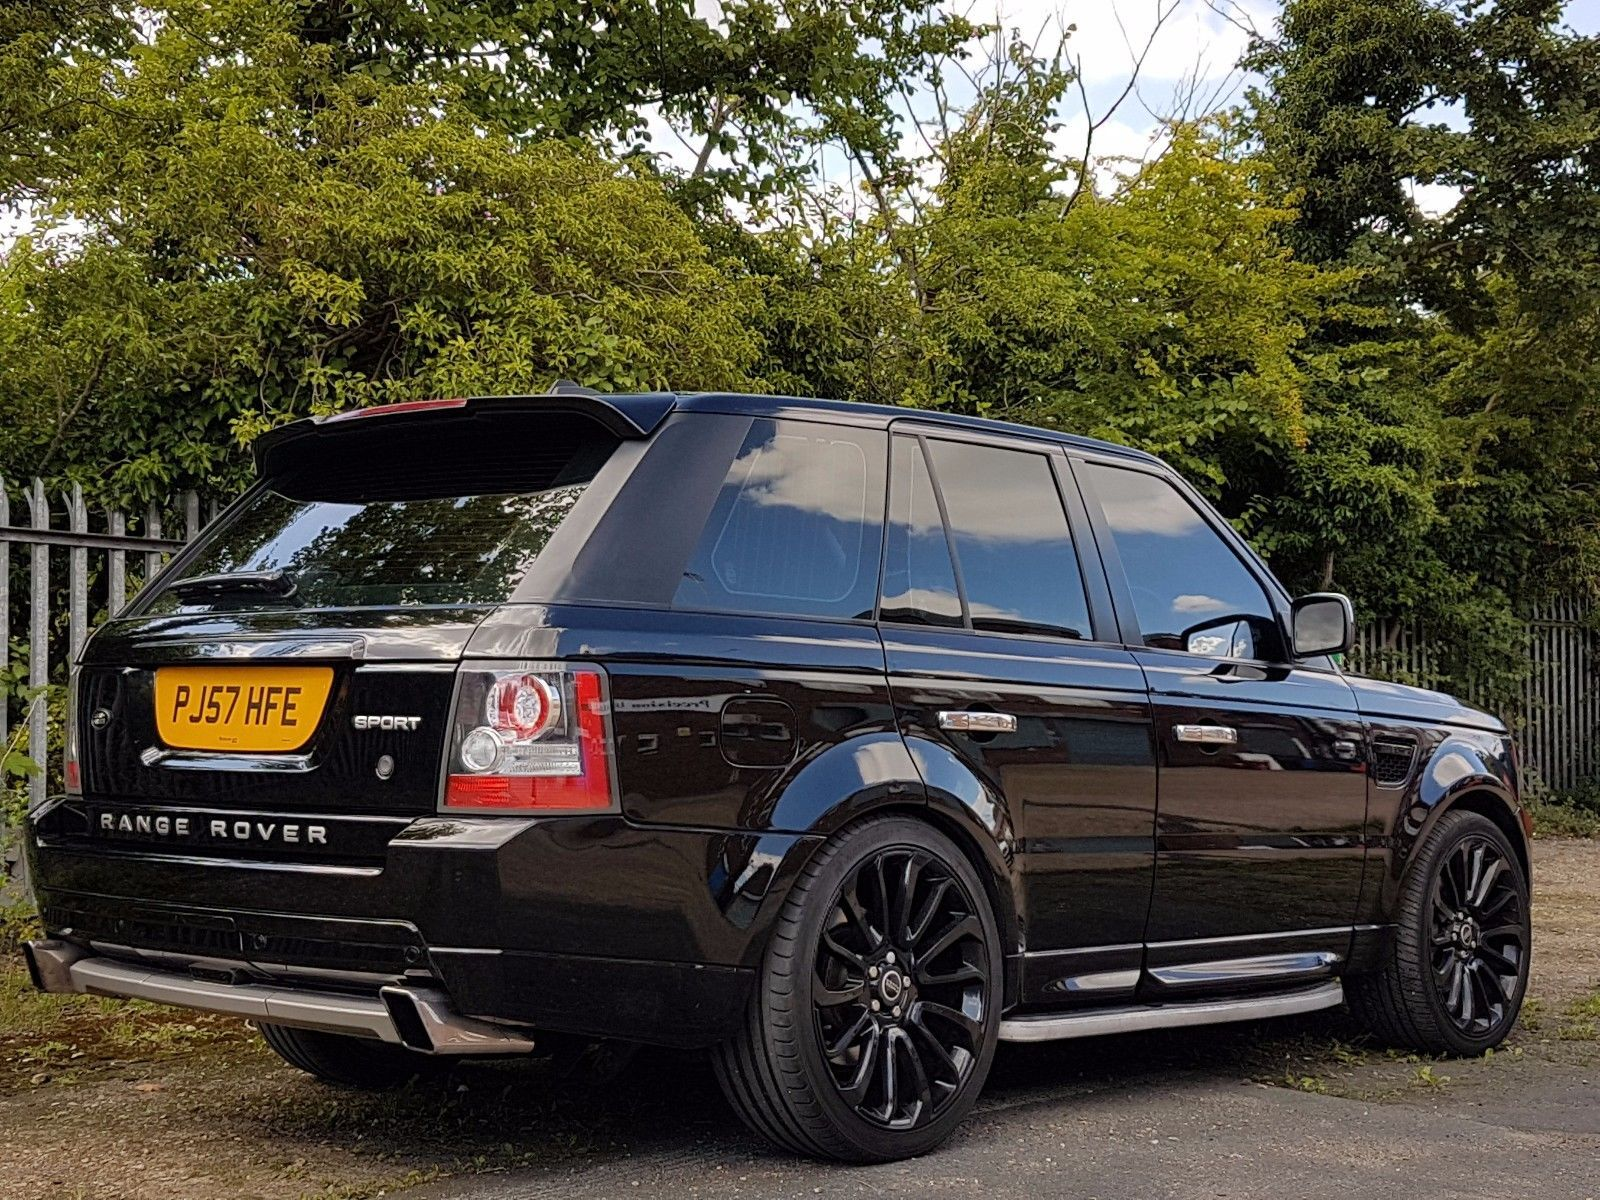 Land Rover Range Rover Sport 3 6TD V8 Twin Turbo 2007 HSE 2012